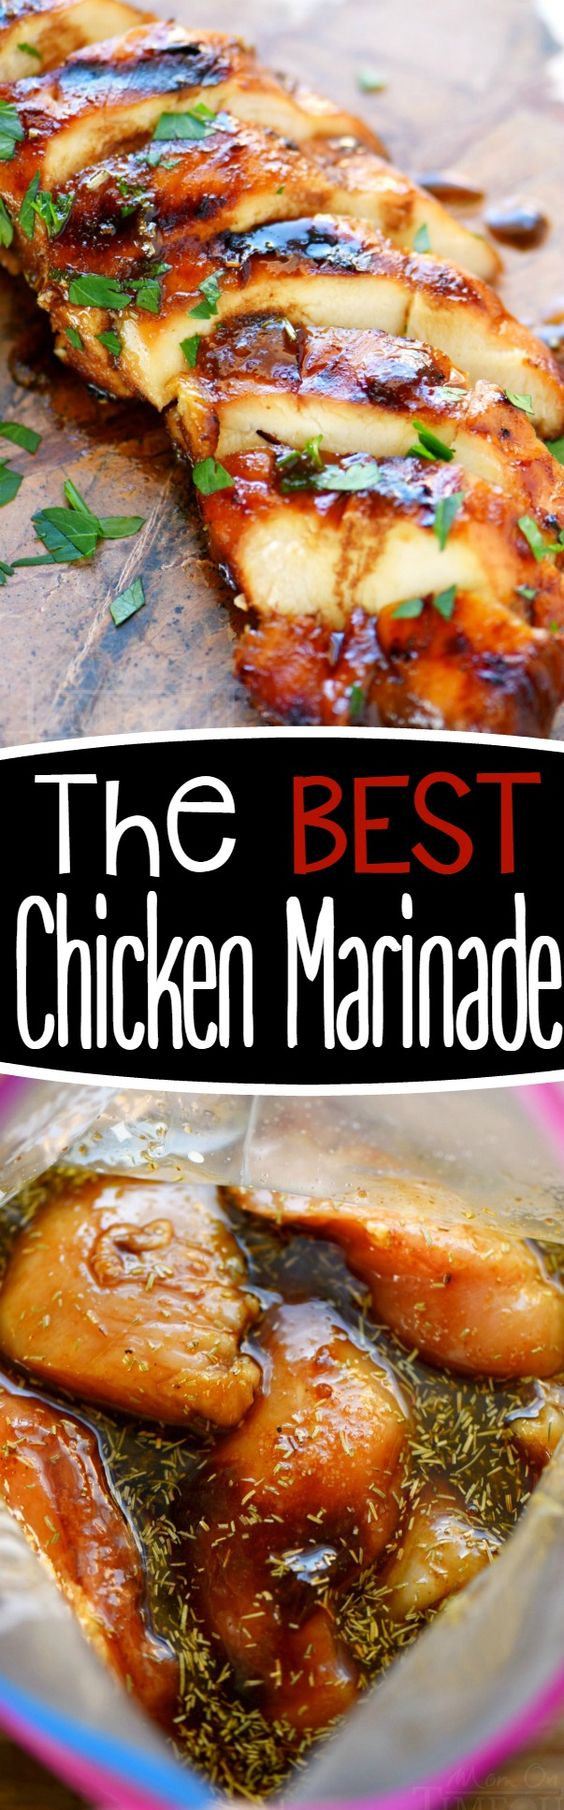 Chicken Recipes - The Best Chicken Marinade recipe ever! Your chicken will be BURSTING with FLAVOR and perfectly moist. Amazing Recipe via Mom on Timeout #chickenrecipes #popularchickenrecipes #chicken #easychickenrecipes #chickenbreastrecipes #easylunches #easydinners #simplefamilymeals #simplefamilyrecipes #simplerecipes